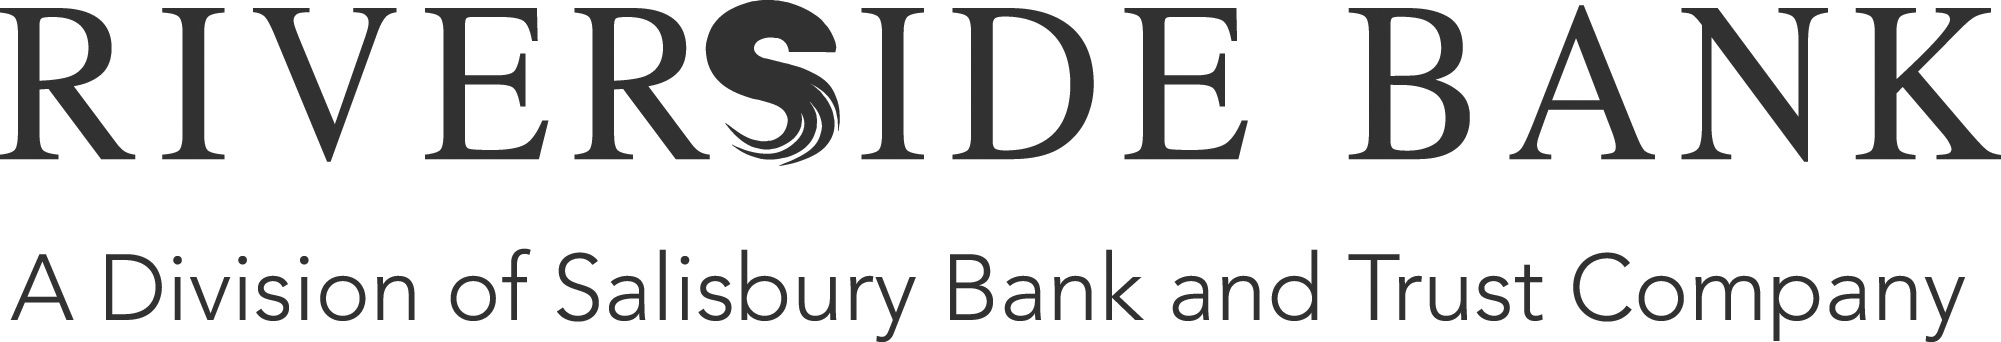 Riverside Bank logo